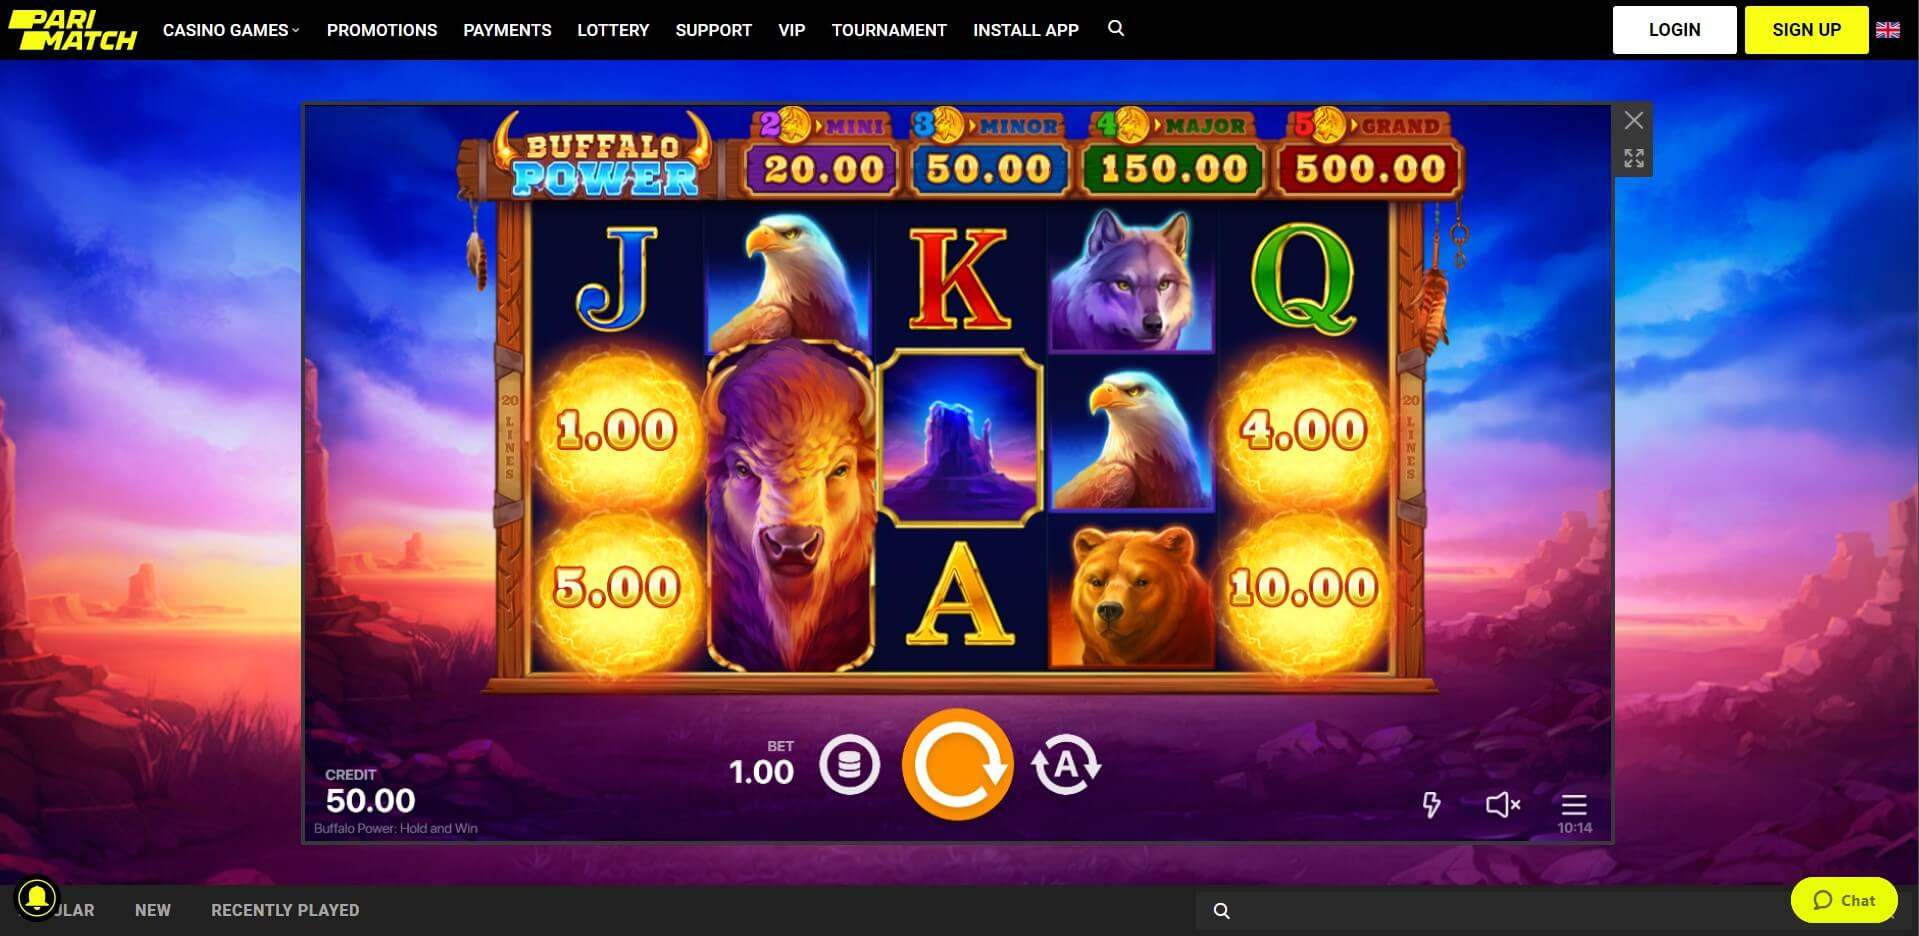 Game Play at Parimatch Casino